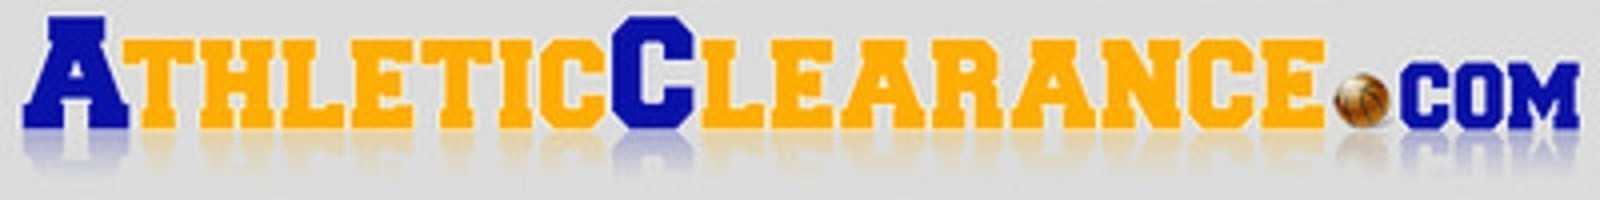 """NEW FHSAA Paperwork Online Platform """"Athletic Clearance"""" is Open for Business"""